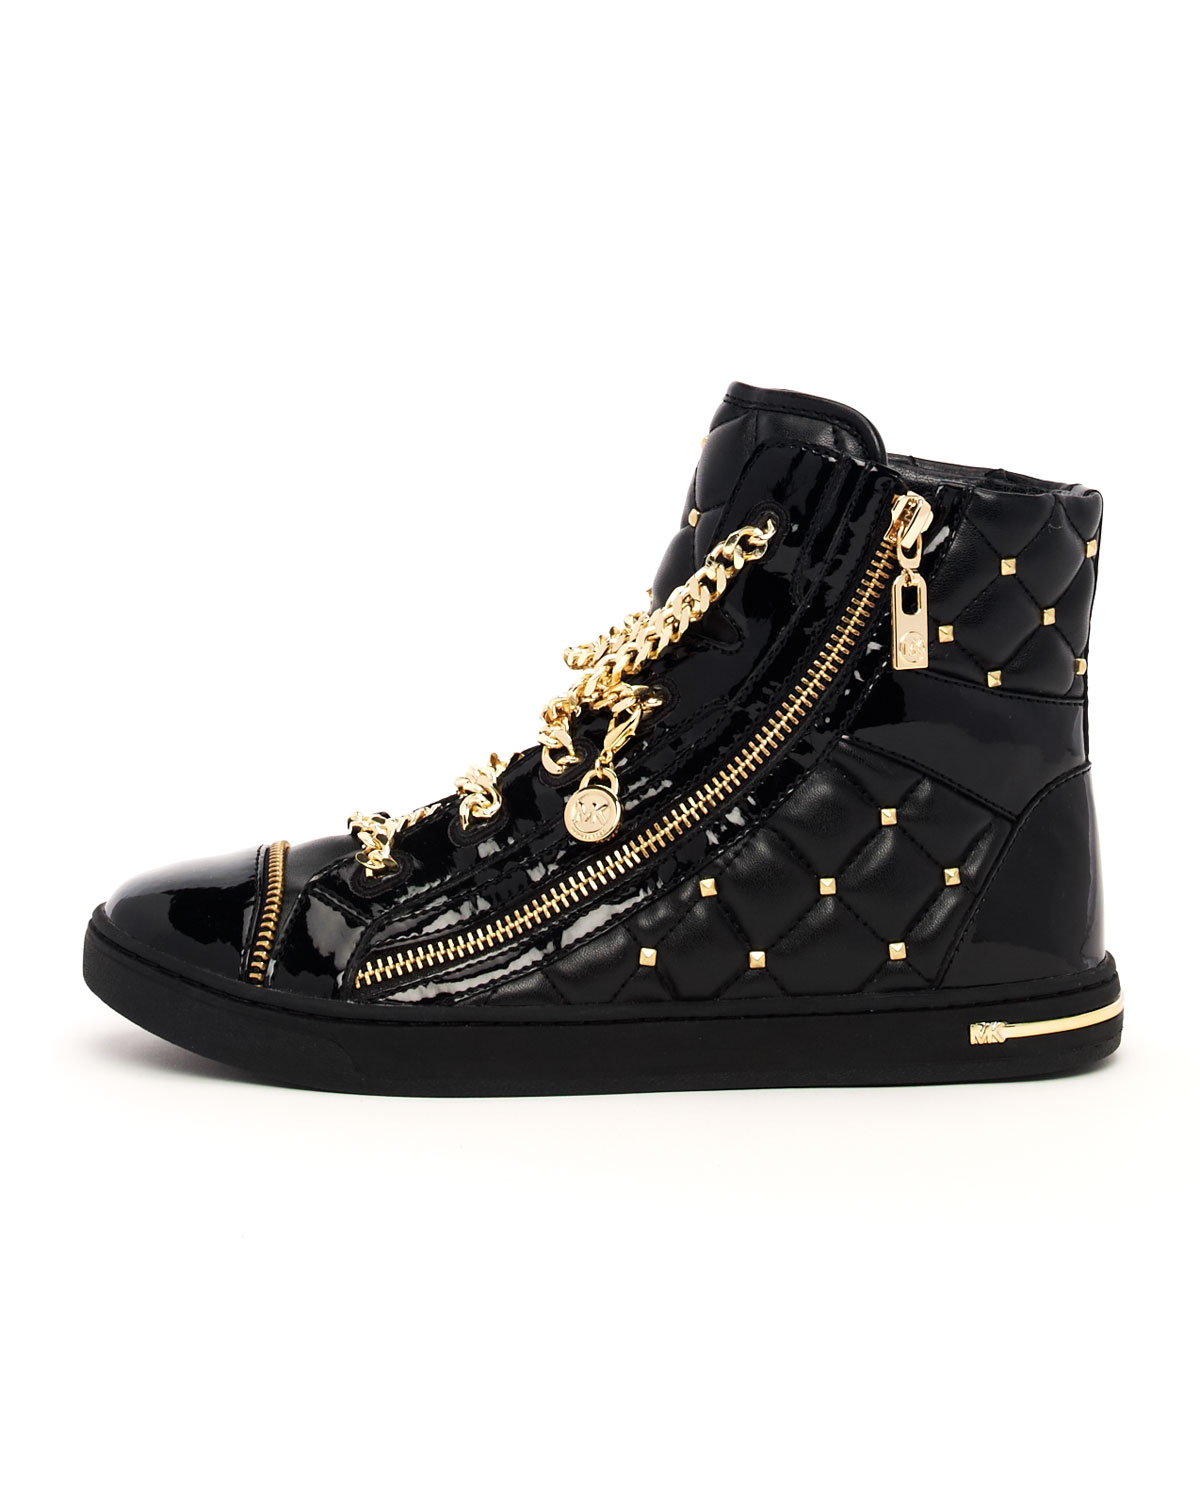 Lyst - Michael Kors Chainlace Quilted Hightop in Metallic